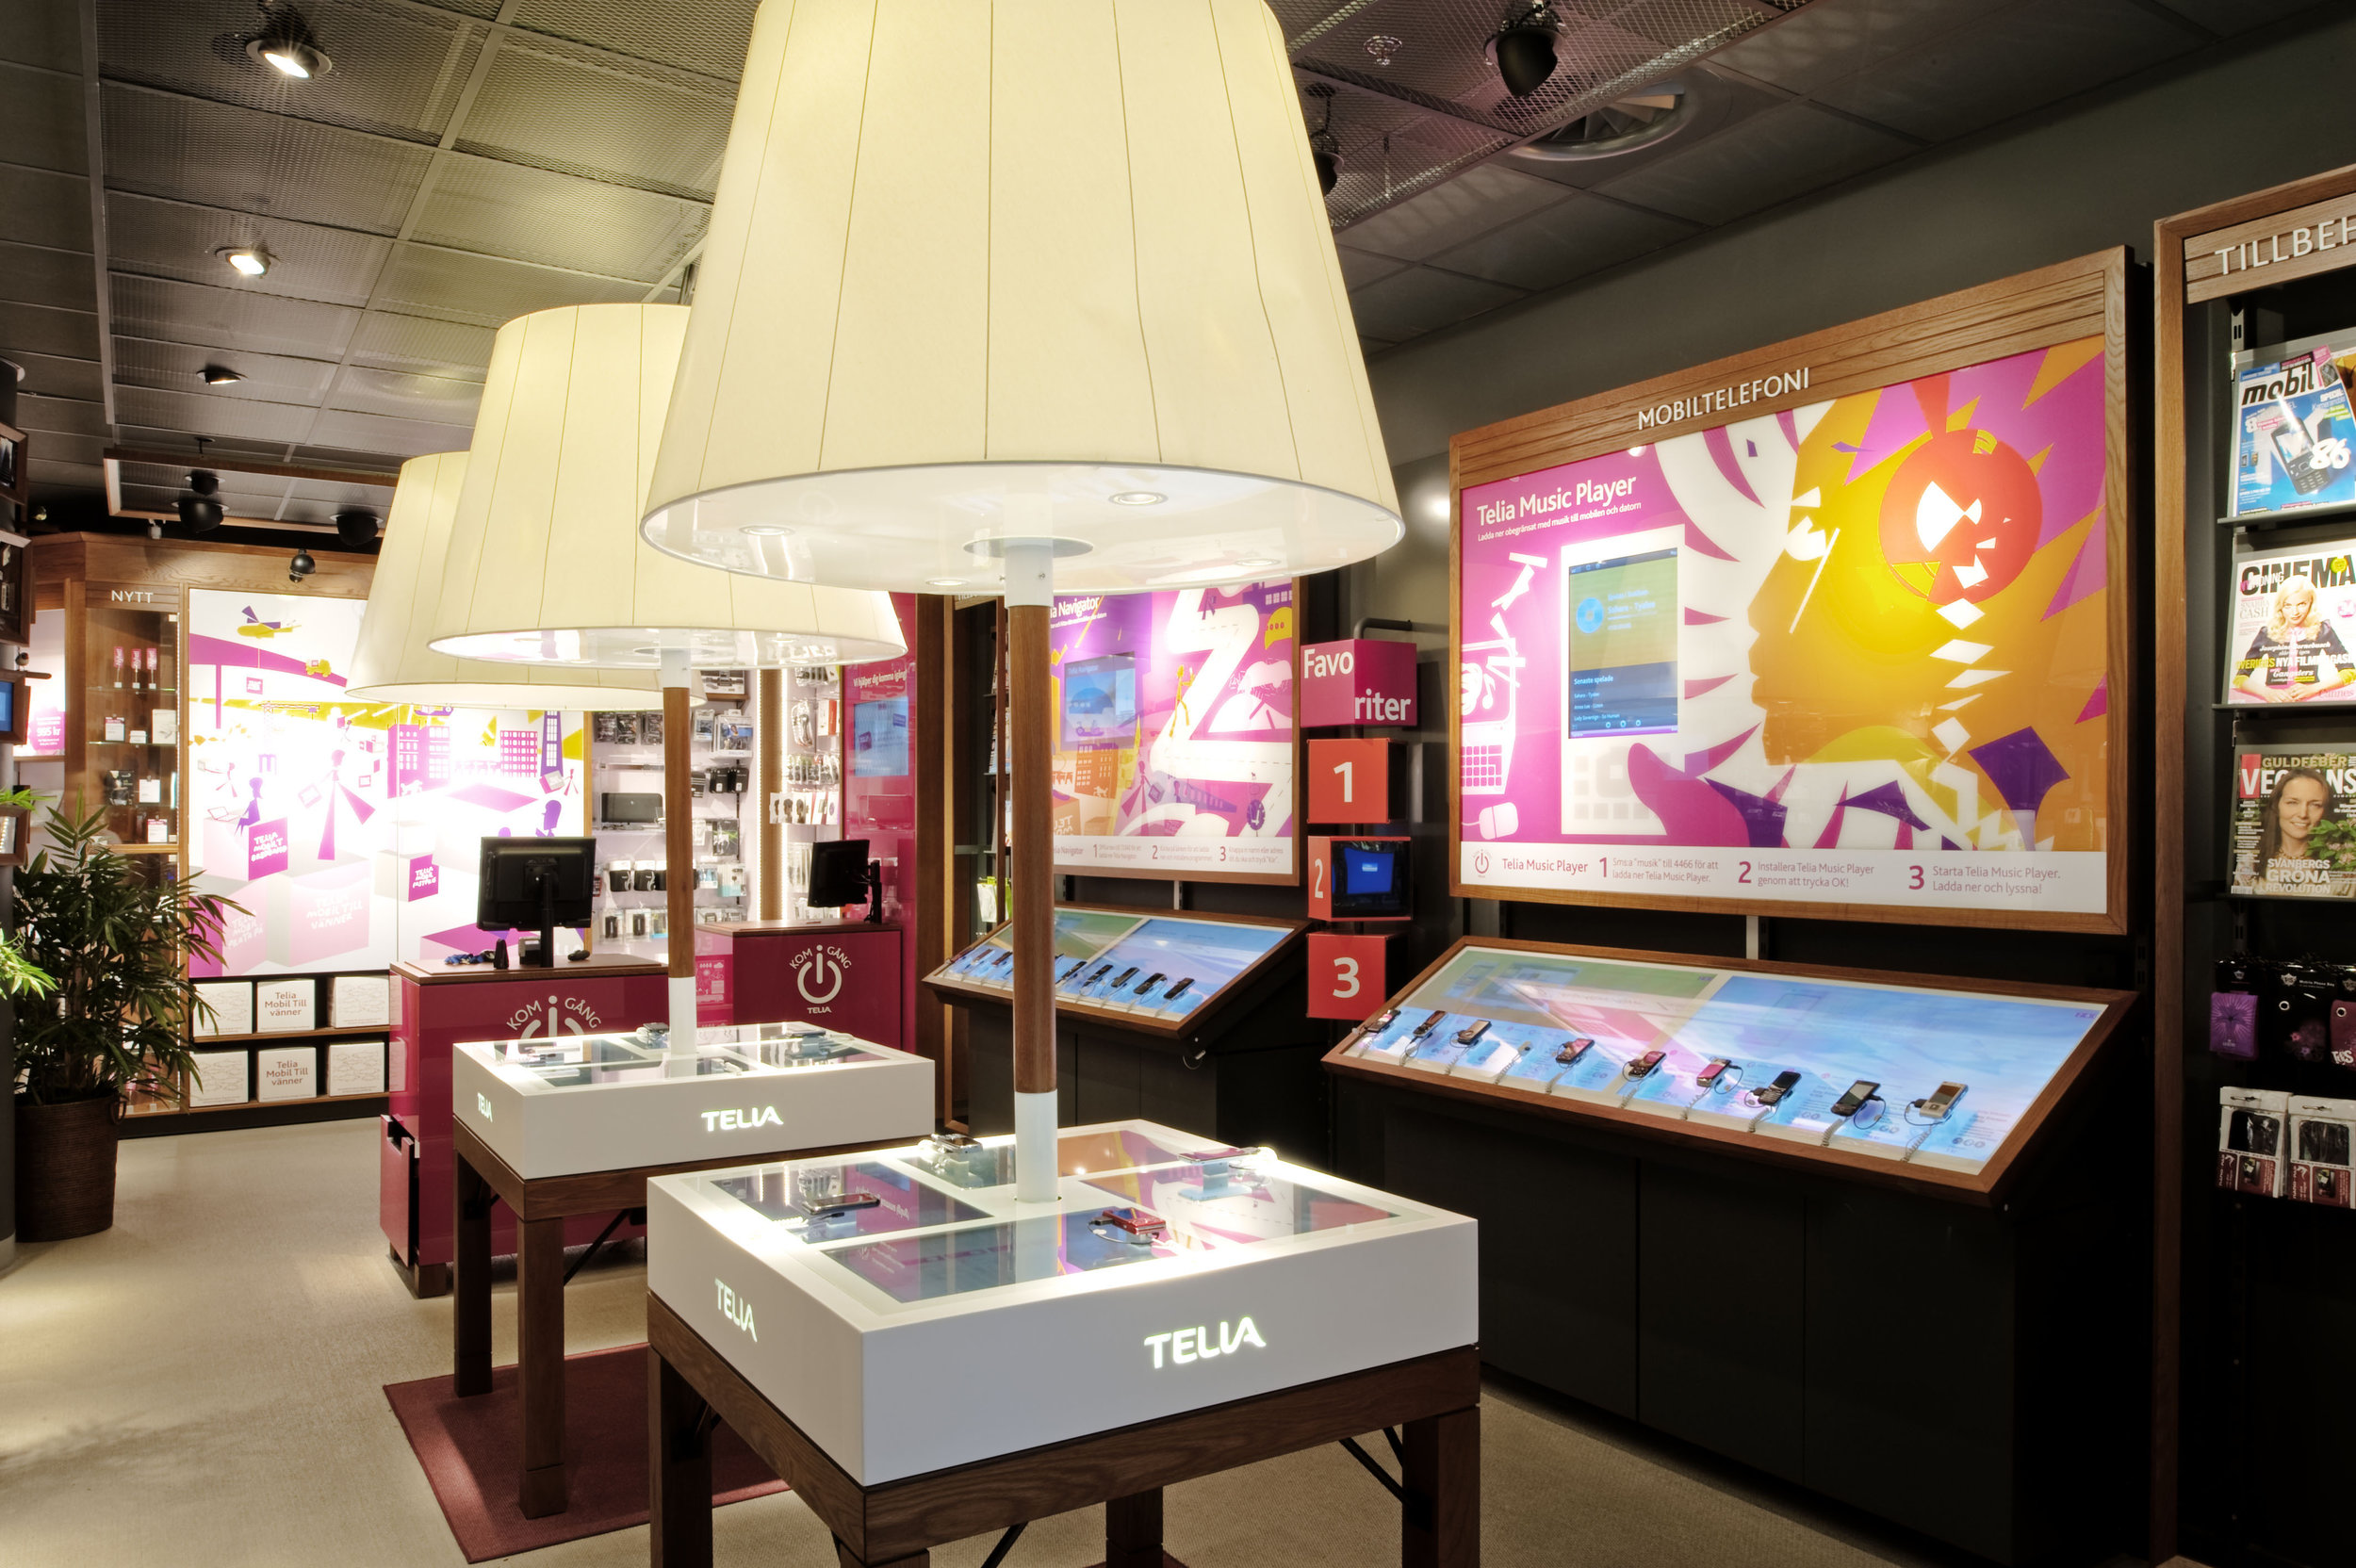 Telia  / Assignment at BLINK / Project: Retail concept, launched in 2009 / Role in project: Creative direction and implementation  Photo by BLINK